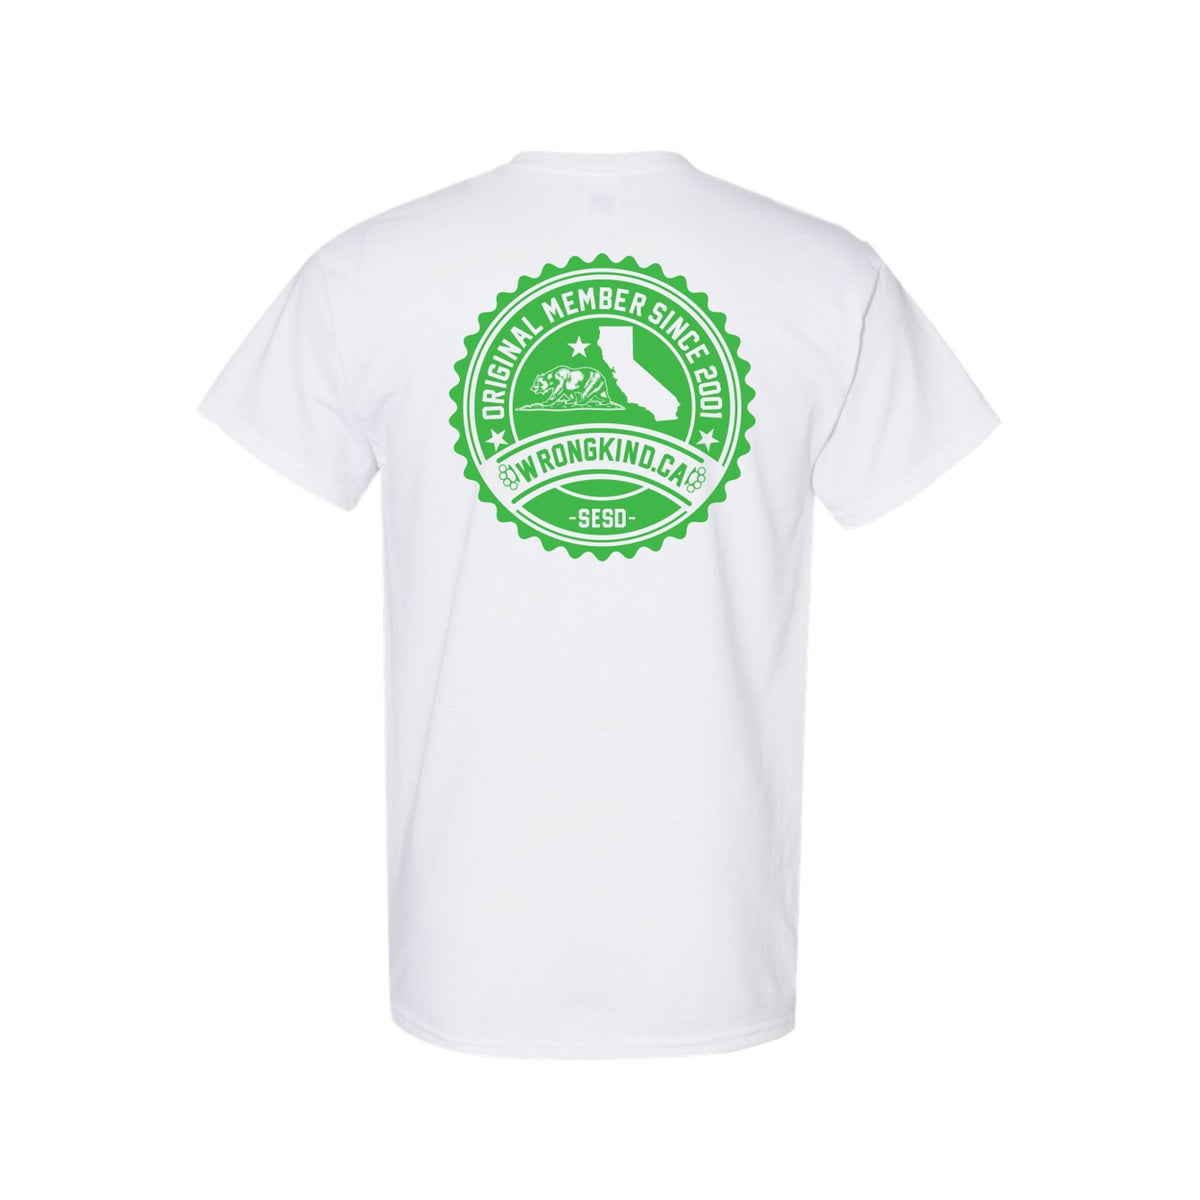 Image of Wrongkind Stamp T-Shirt (White w/ Green)